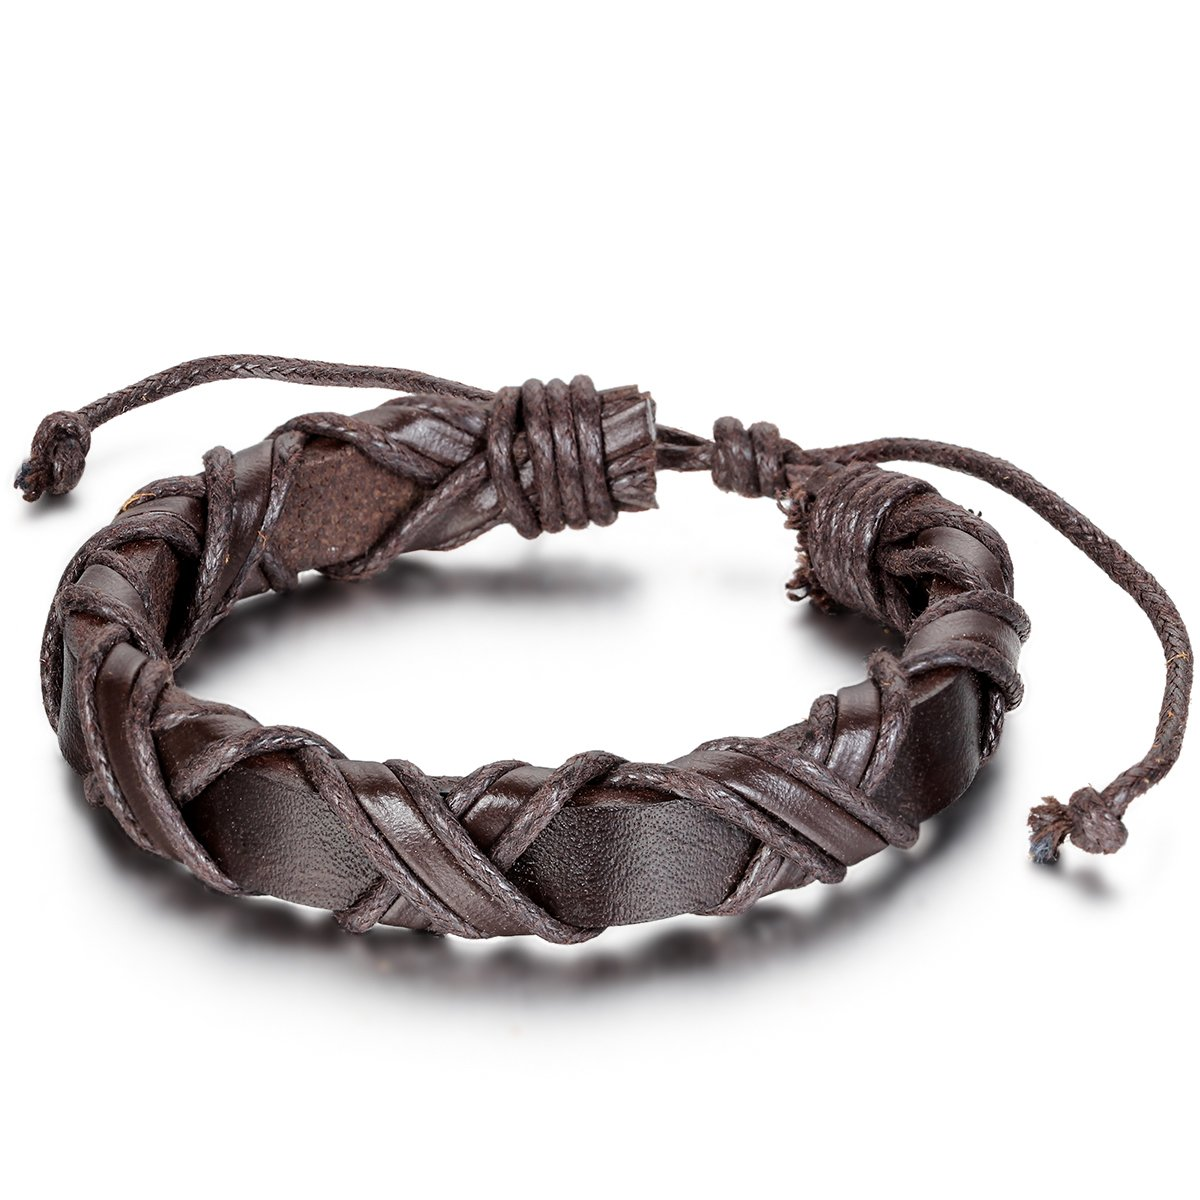 Flongo Men's Unisex Braided Handmade Infinity Symbol Brown Leather Strap Cuff Bracelet, Fit 8-10 inch Wrist